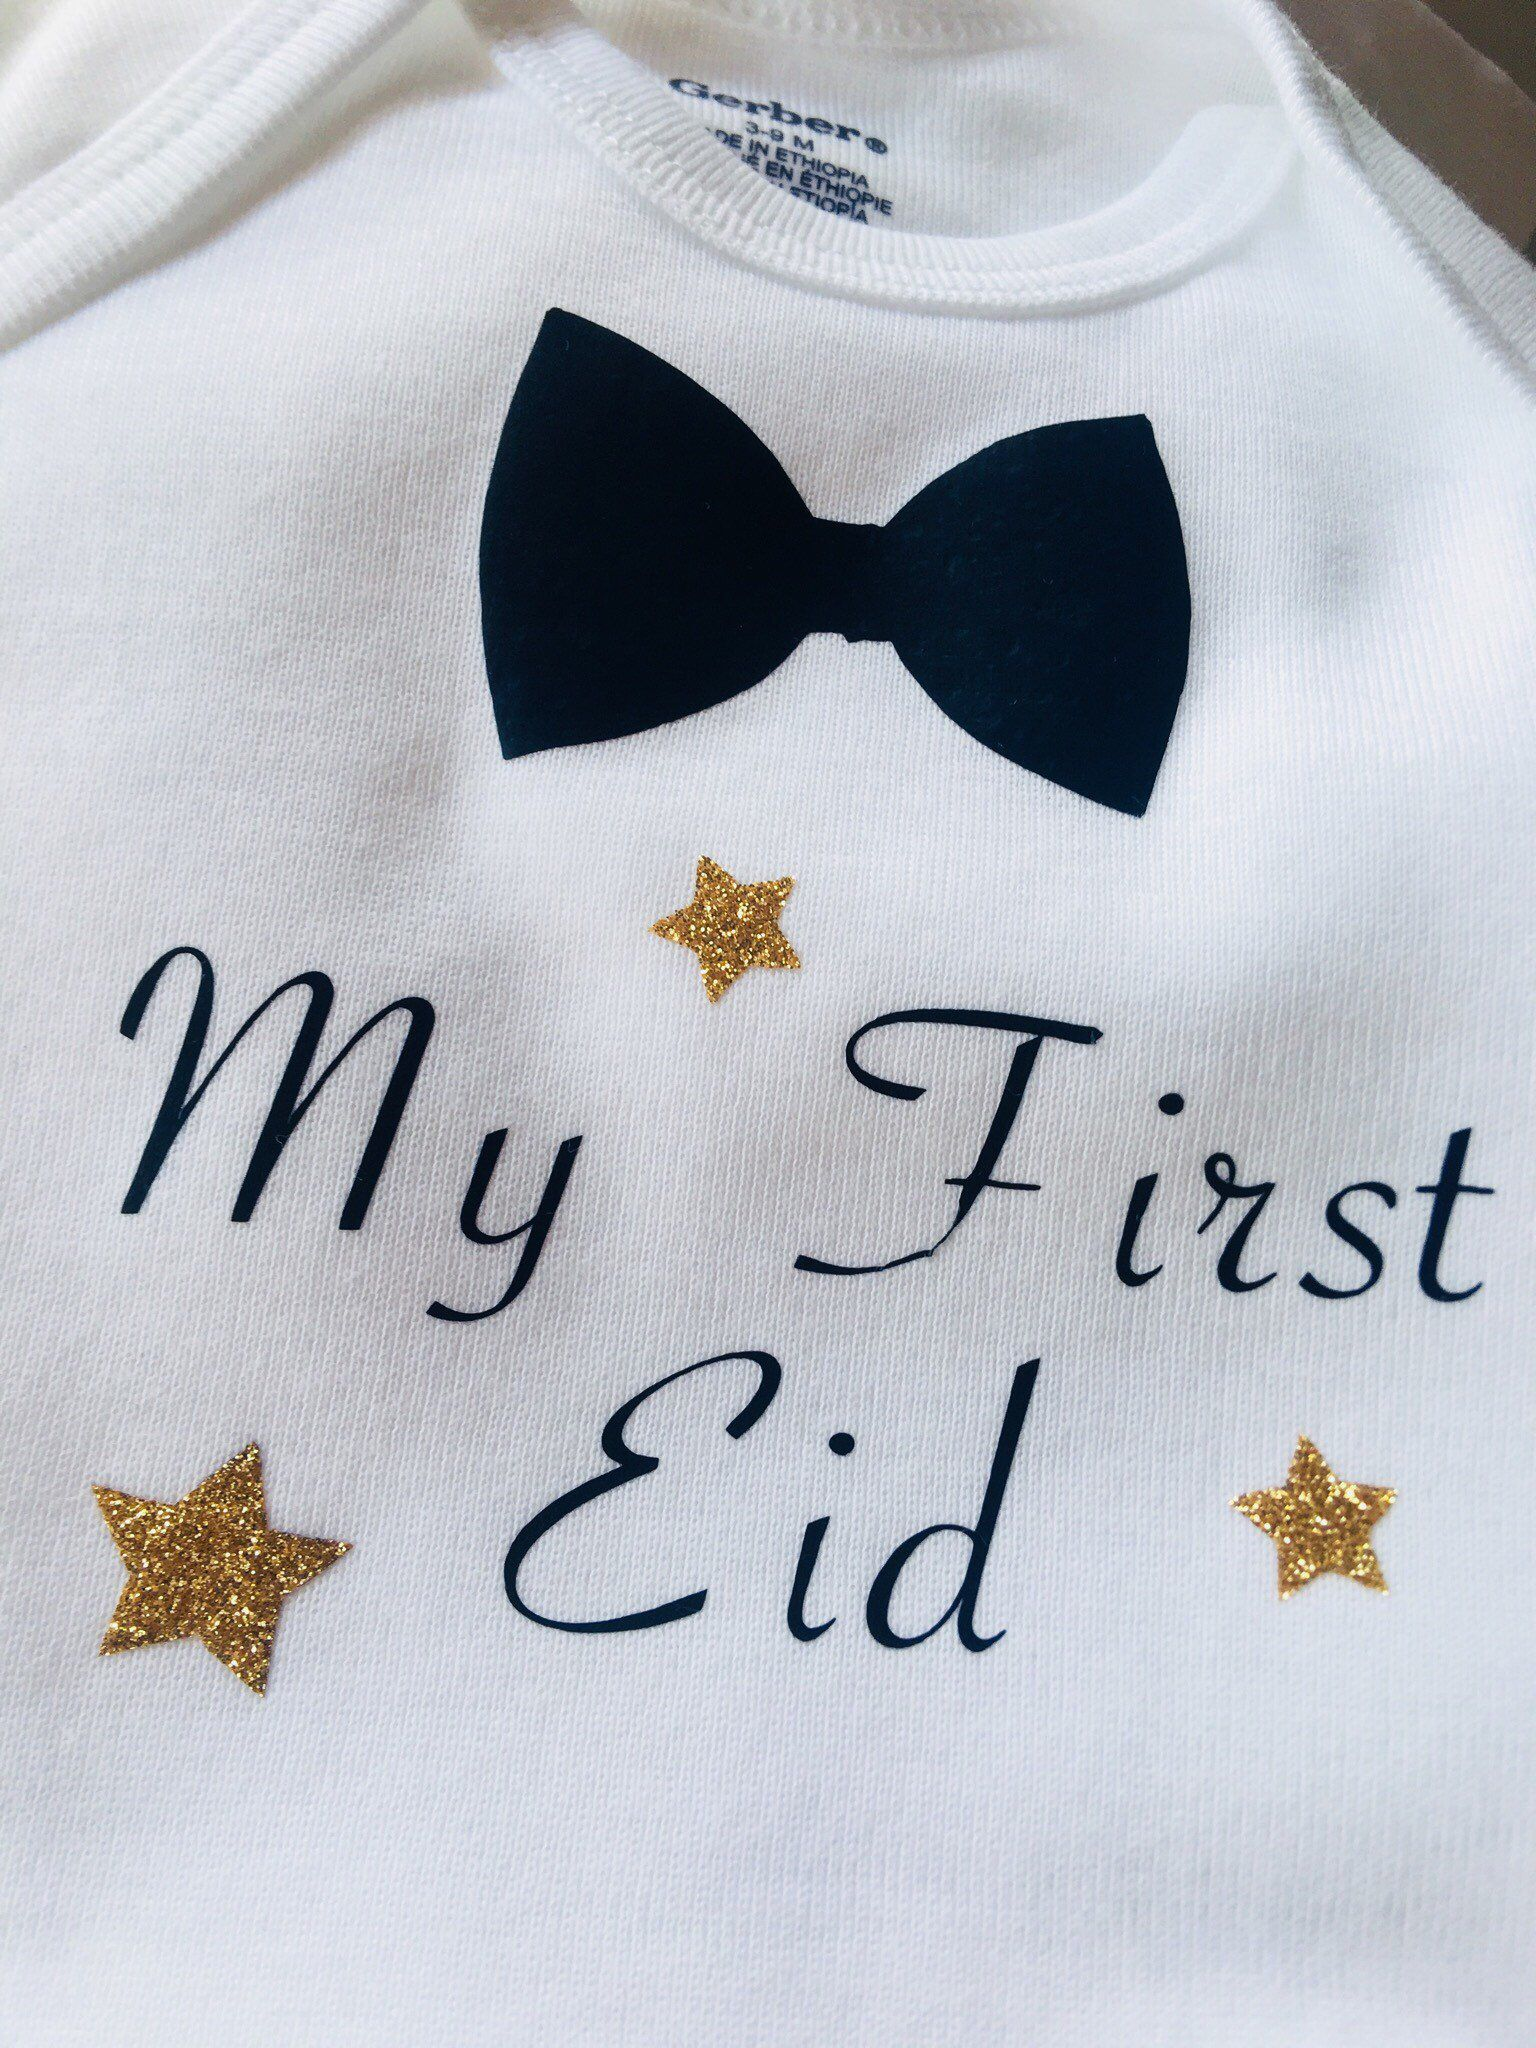 866e2c05e Excited to share this item from my #etsy shop: My First Eid baby onesies